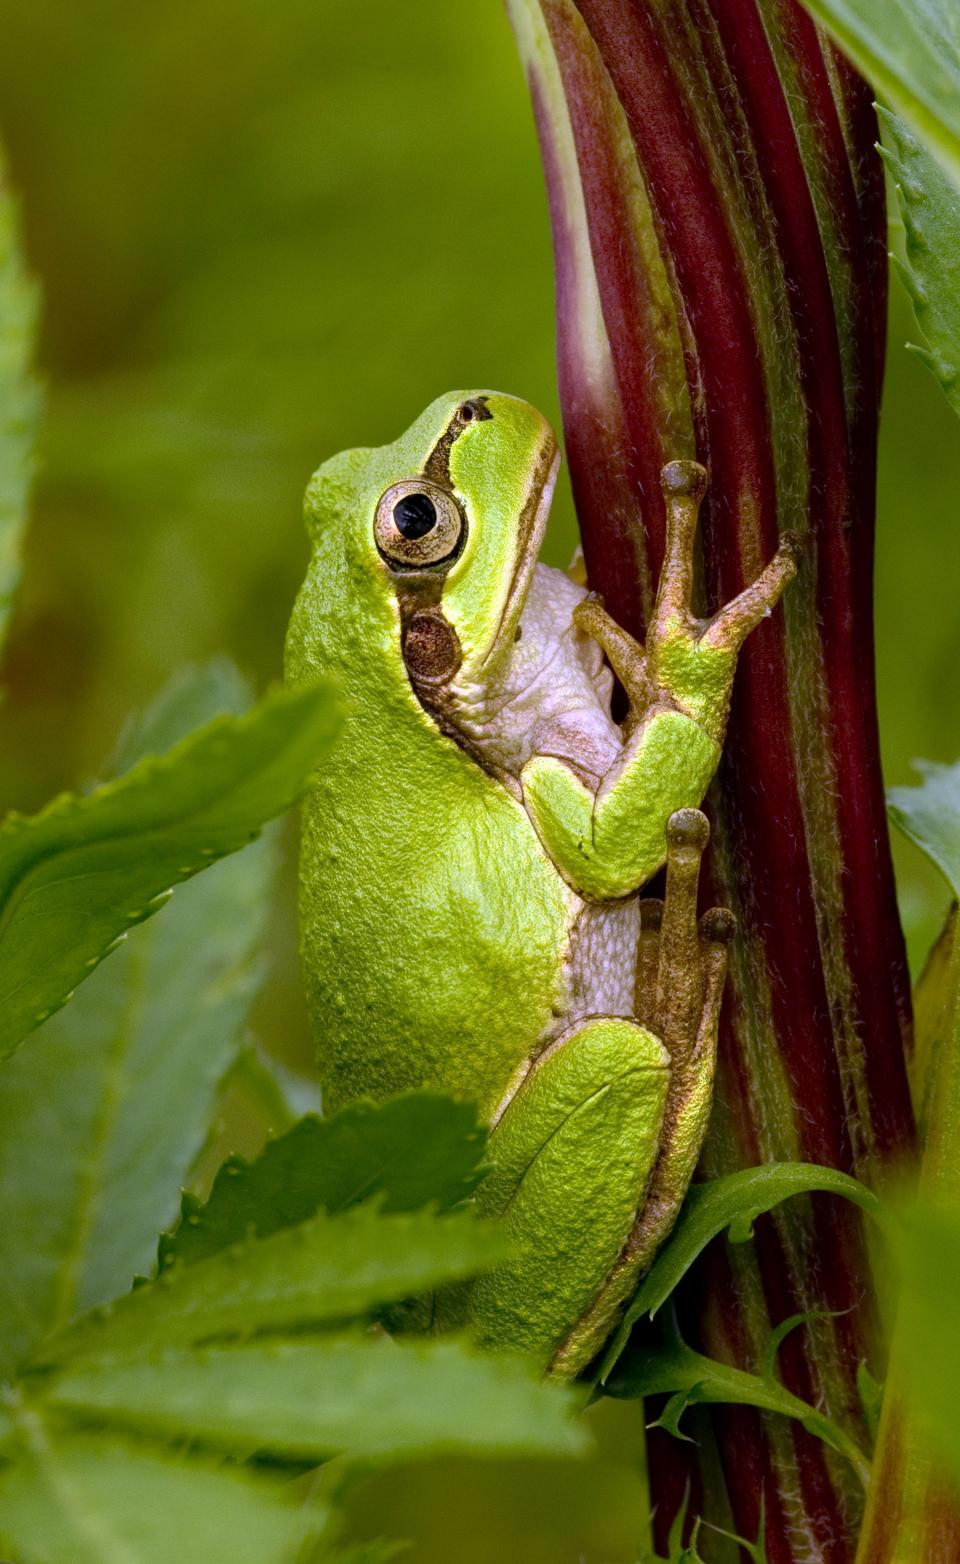 tree frog hiding in green background leafs Agalychnis